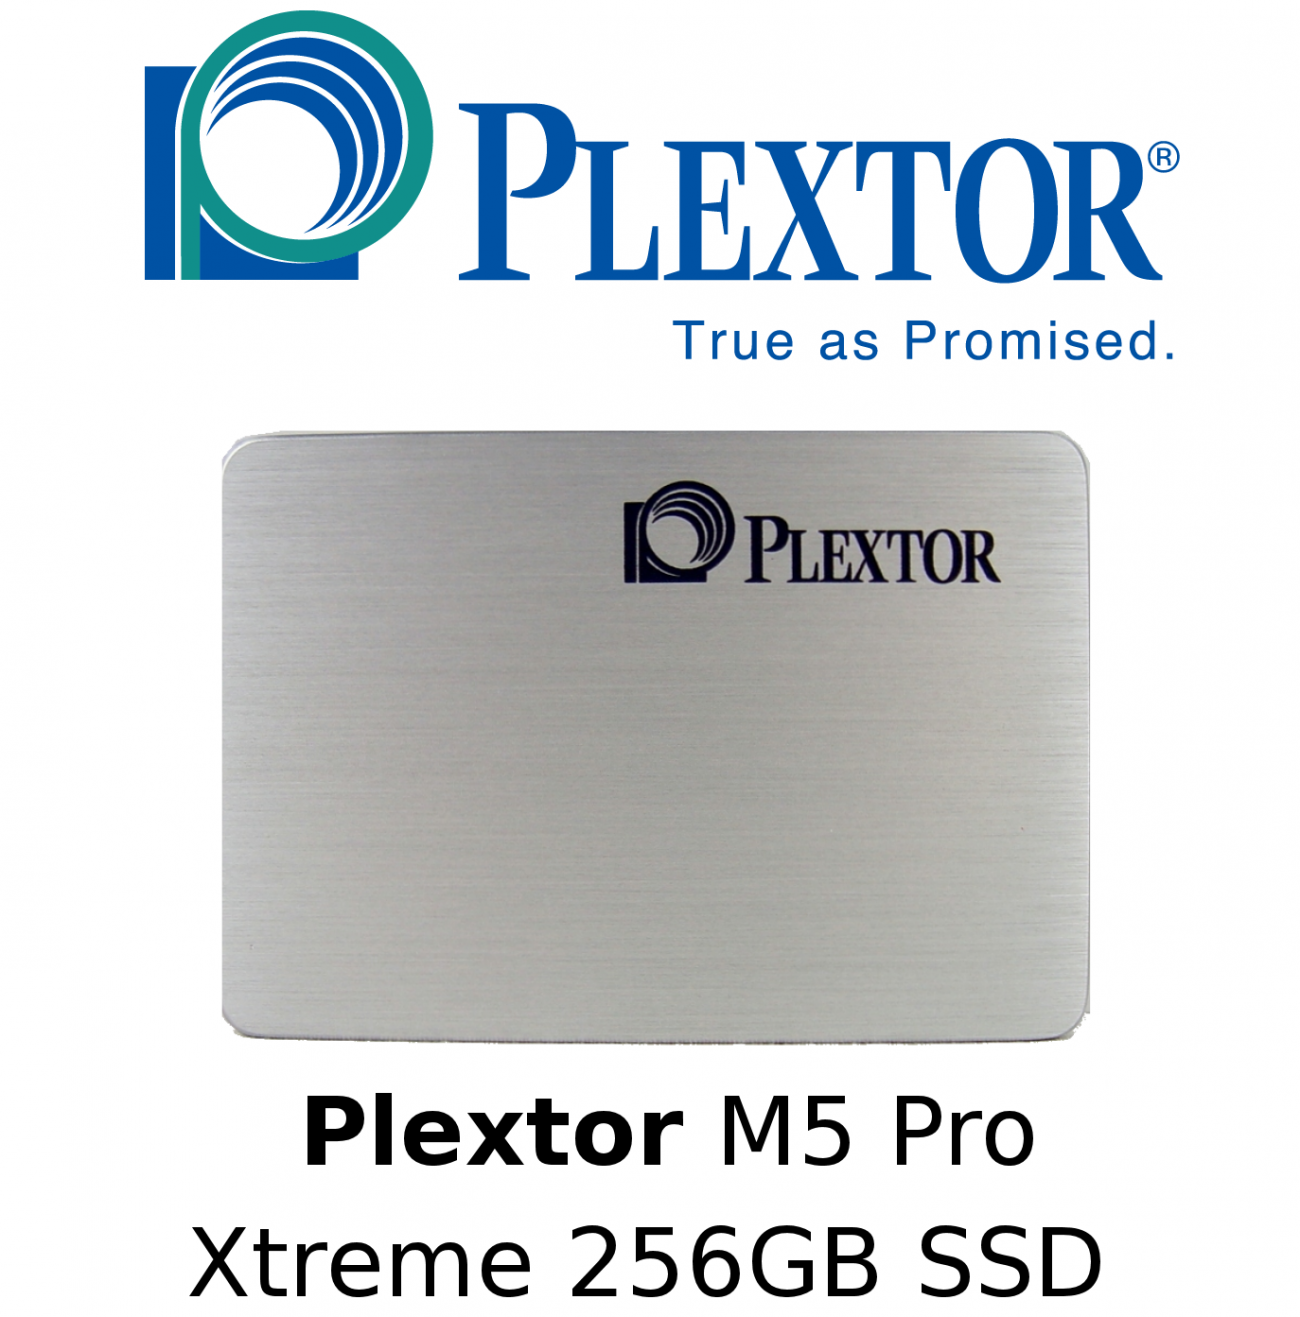 weekly_giveaway_win_a_speedy_plextor_m5_pro_xtreme_256gb_ssd